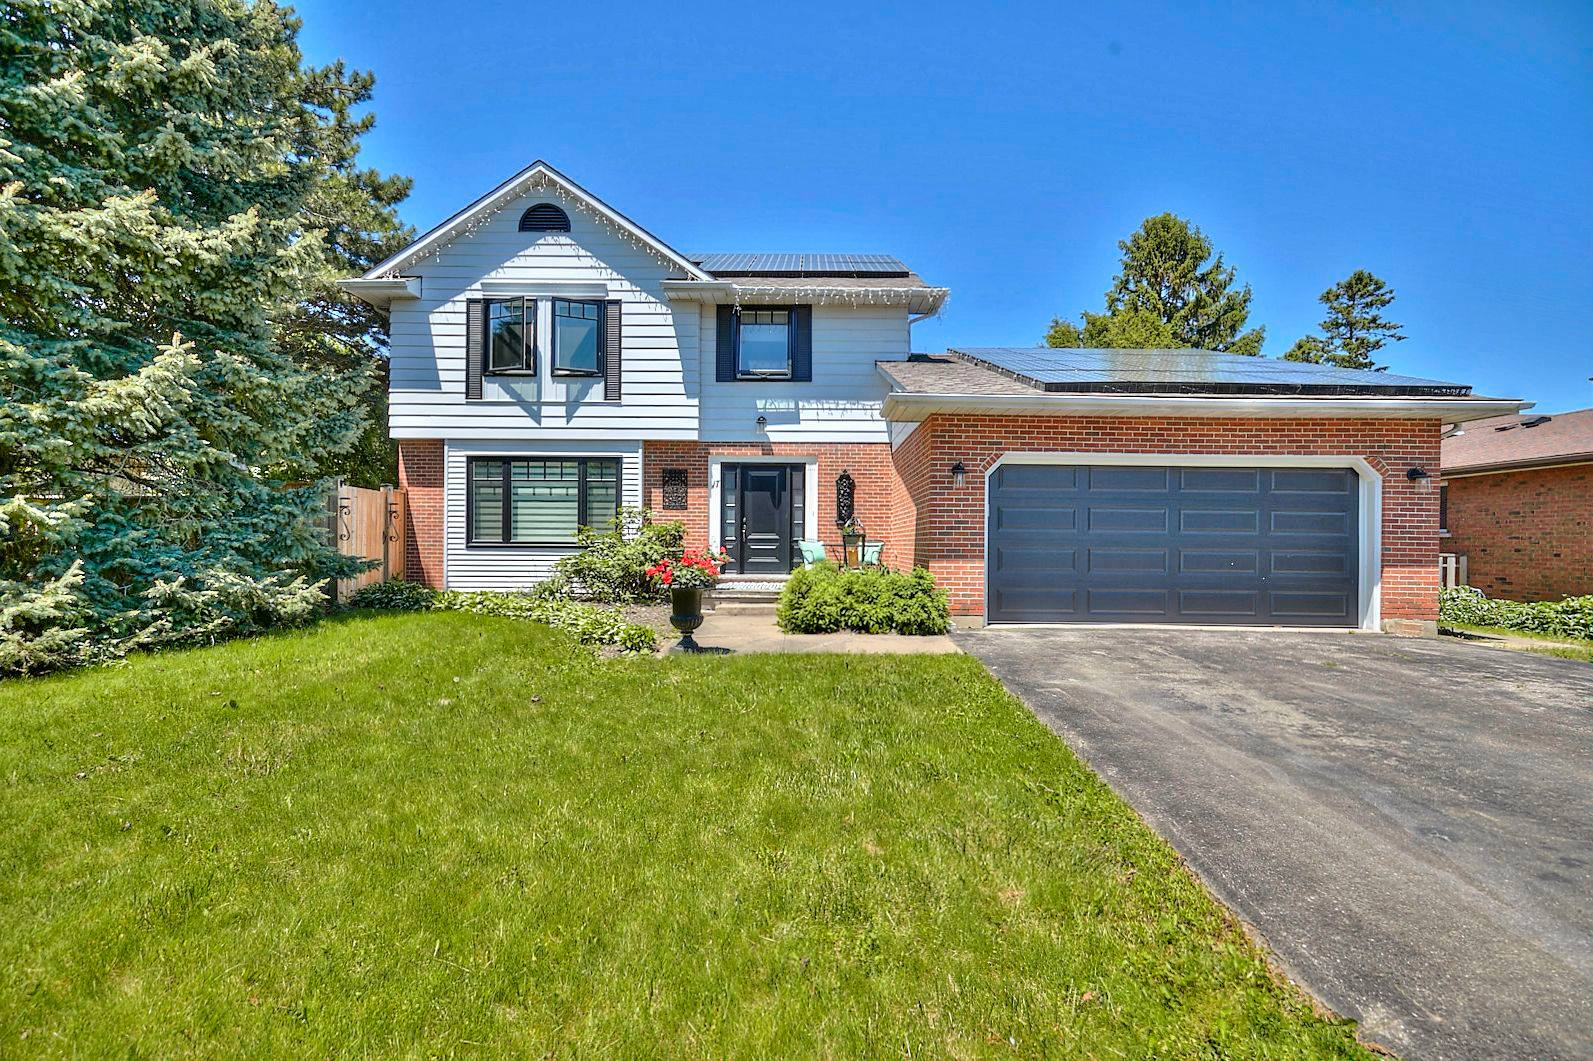 <h3>SOLD</h3><p>17 Lower Canada Drive, Niagara-On-The-Lake, Ontario</p>